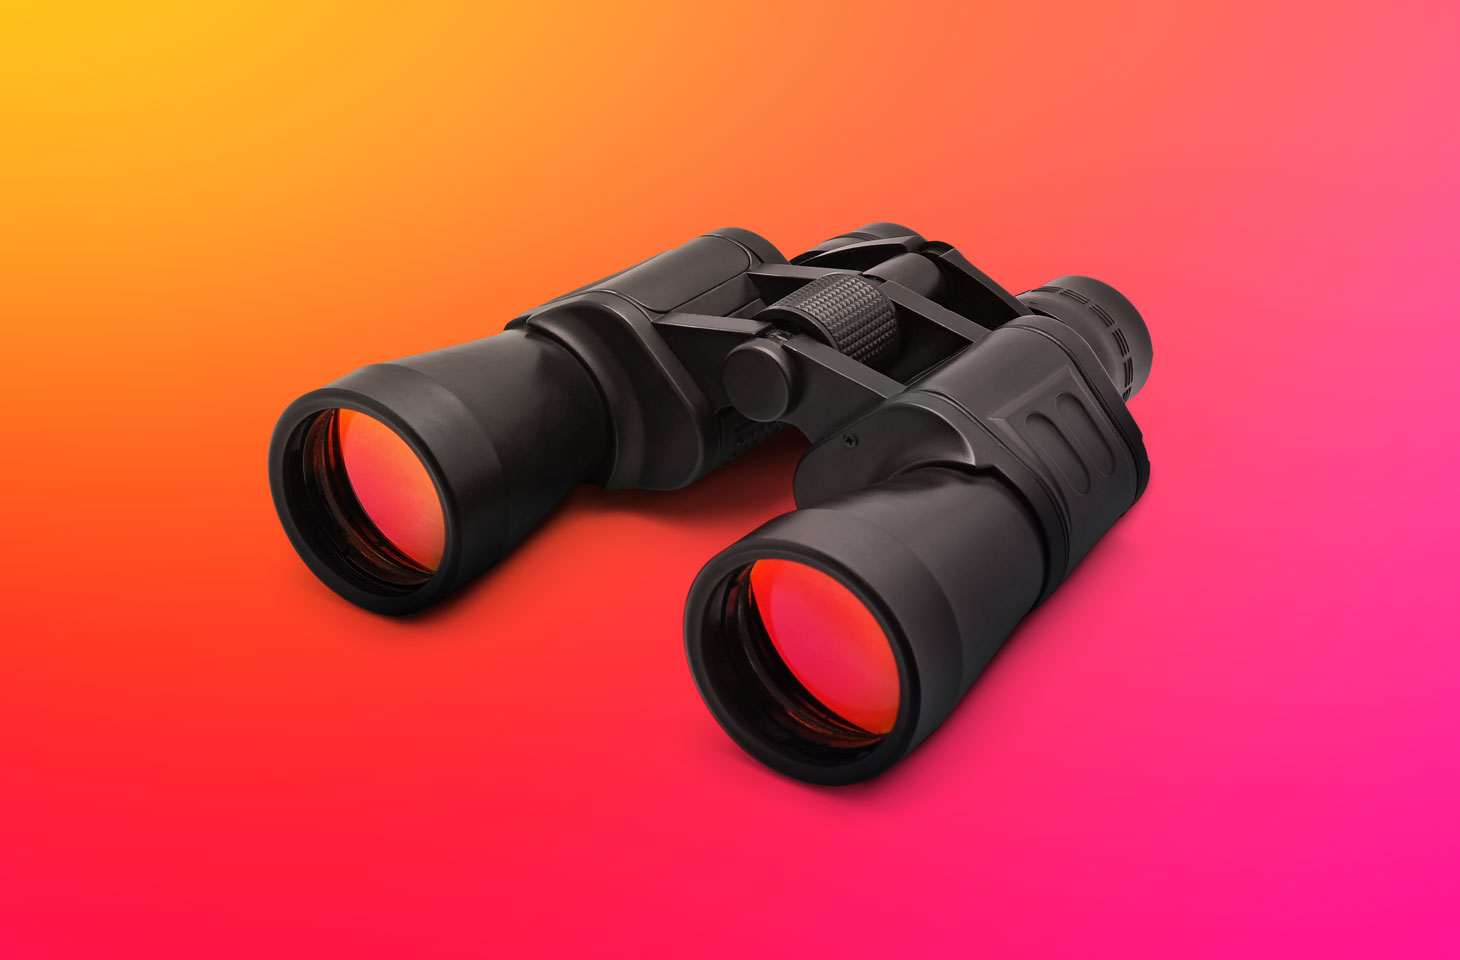 The MonitorMinor spying app for Android can steal messages, use the built-in camera to take photos and videos, and remotely control the smartphone.